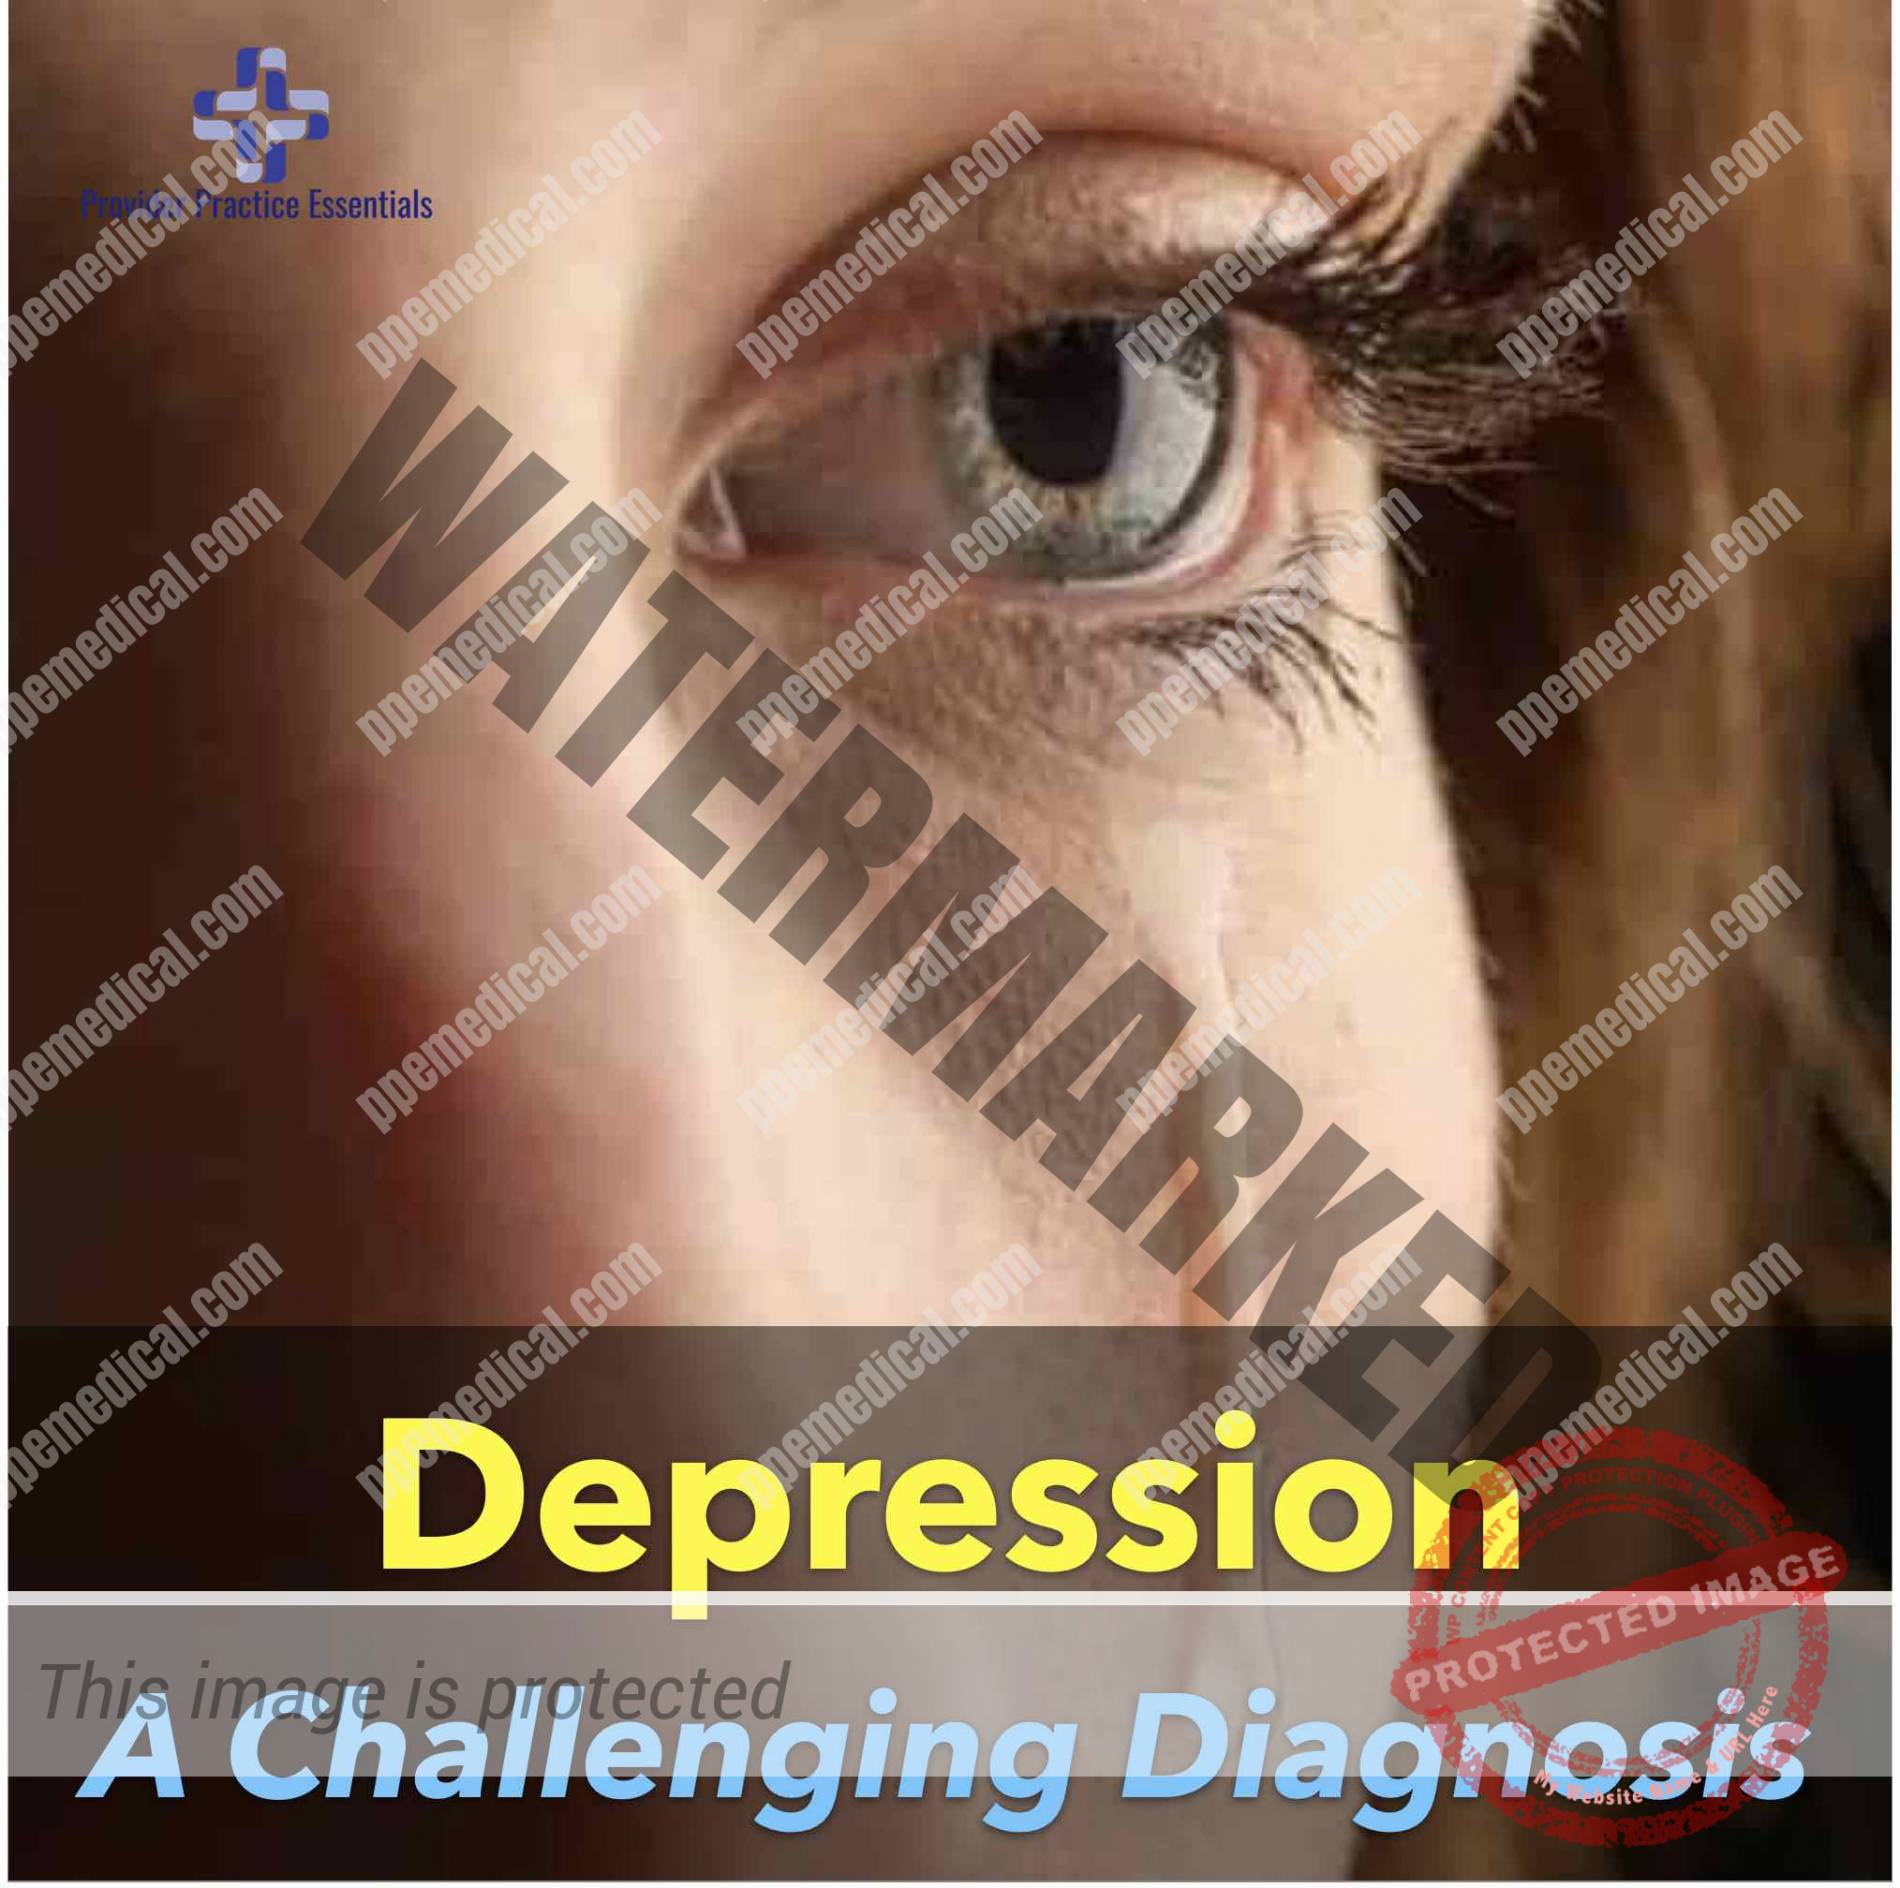 Depression - A Challenging Diagnosis